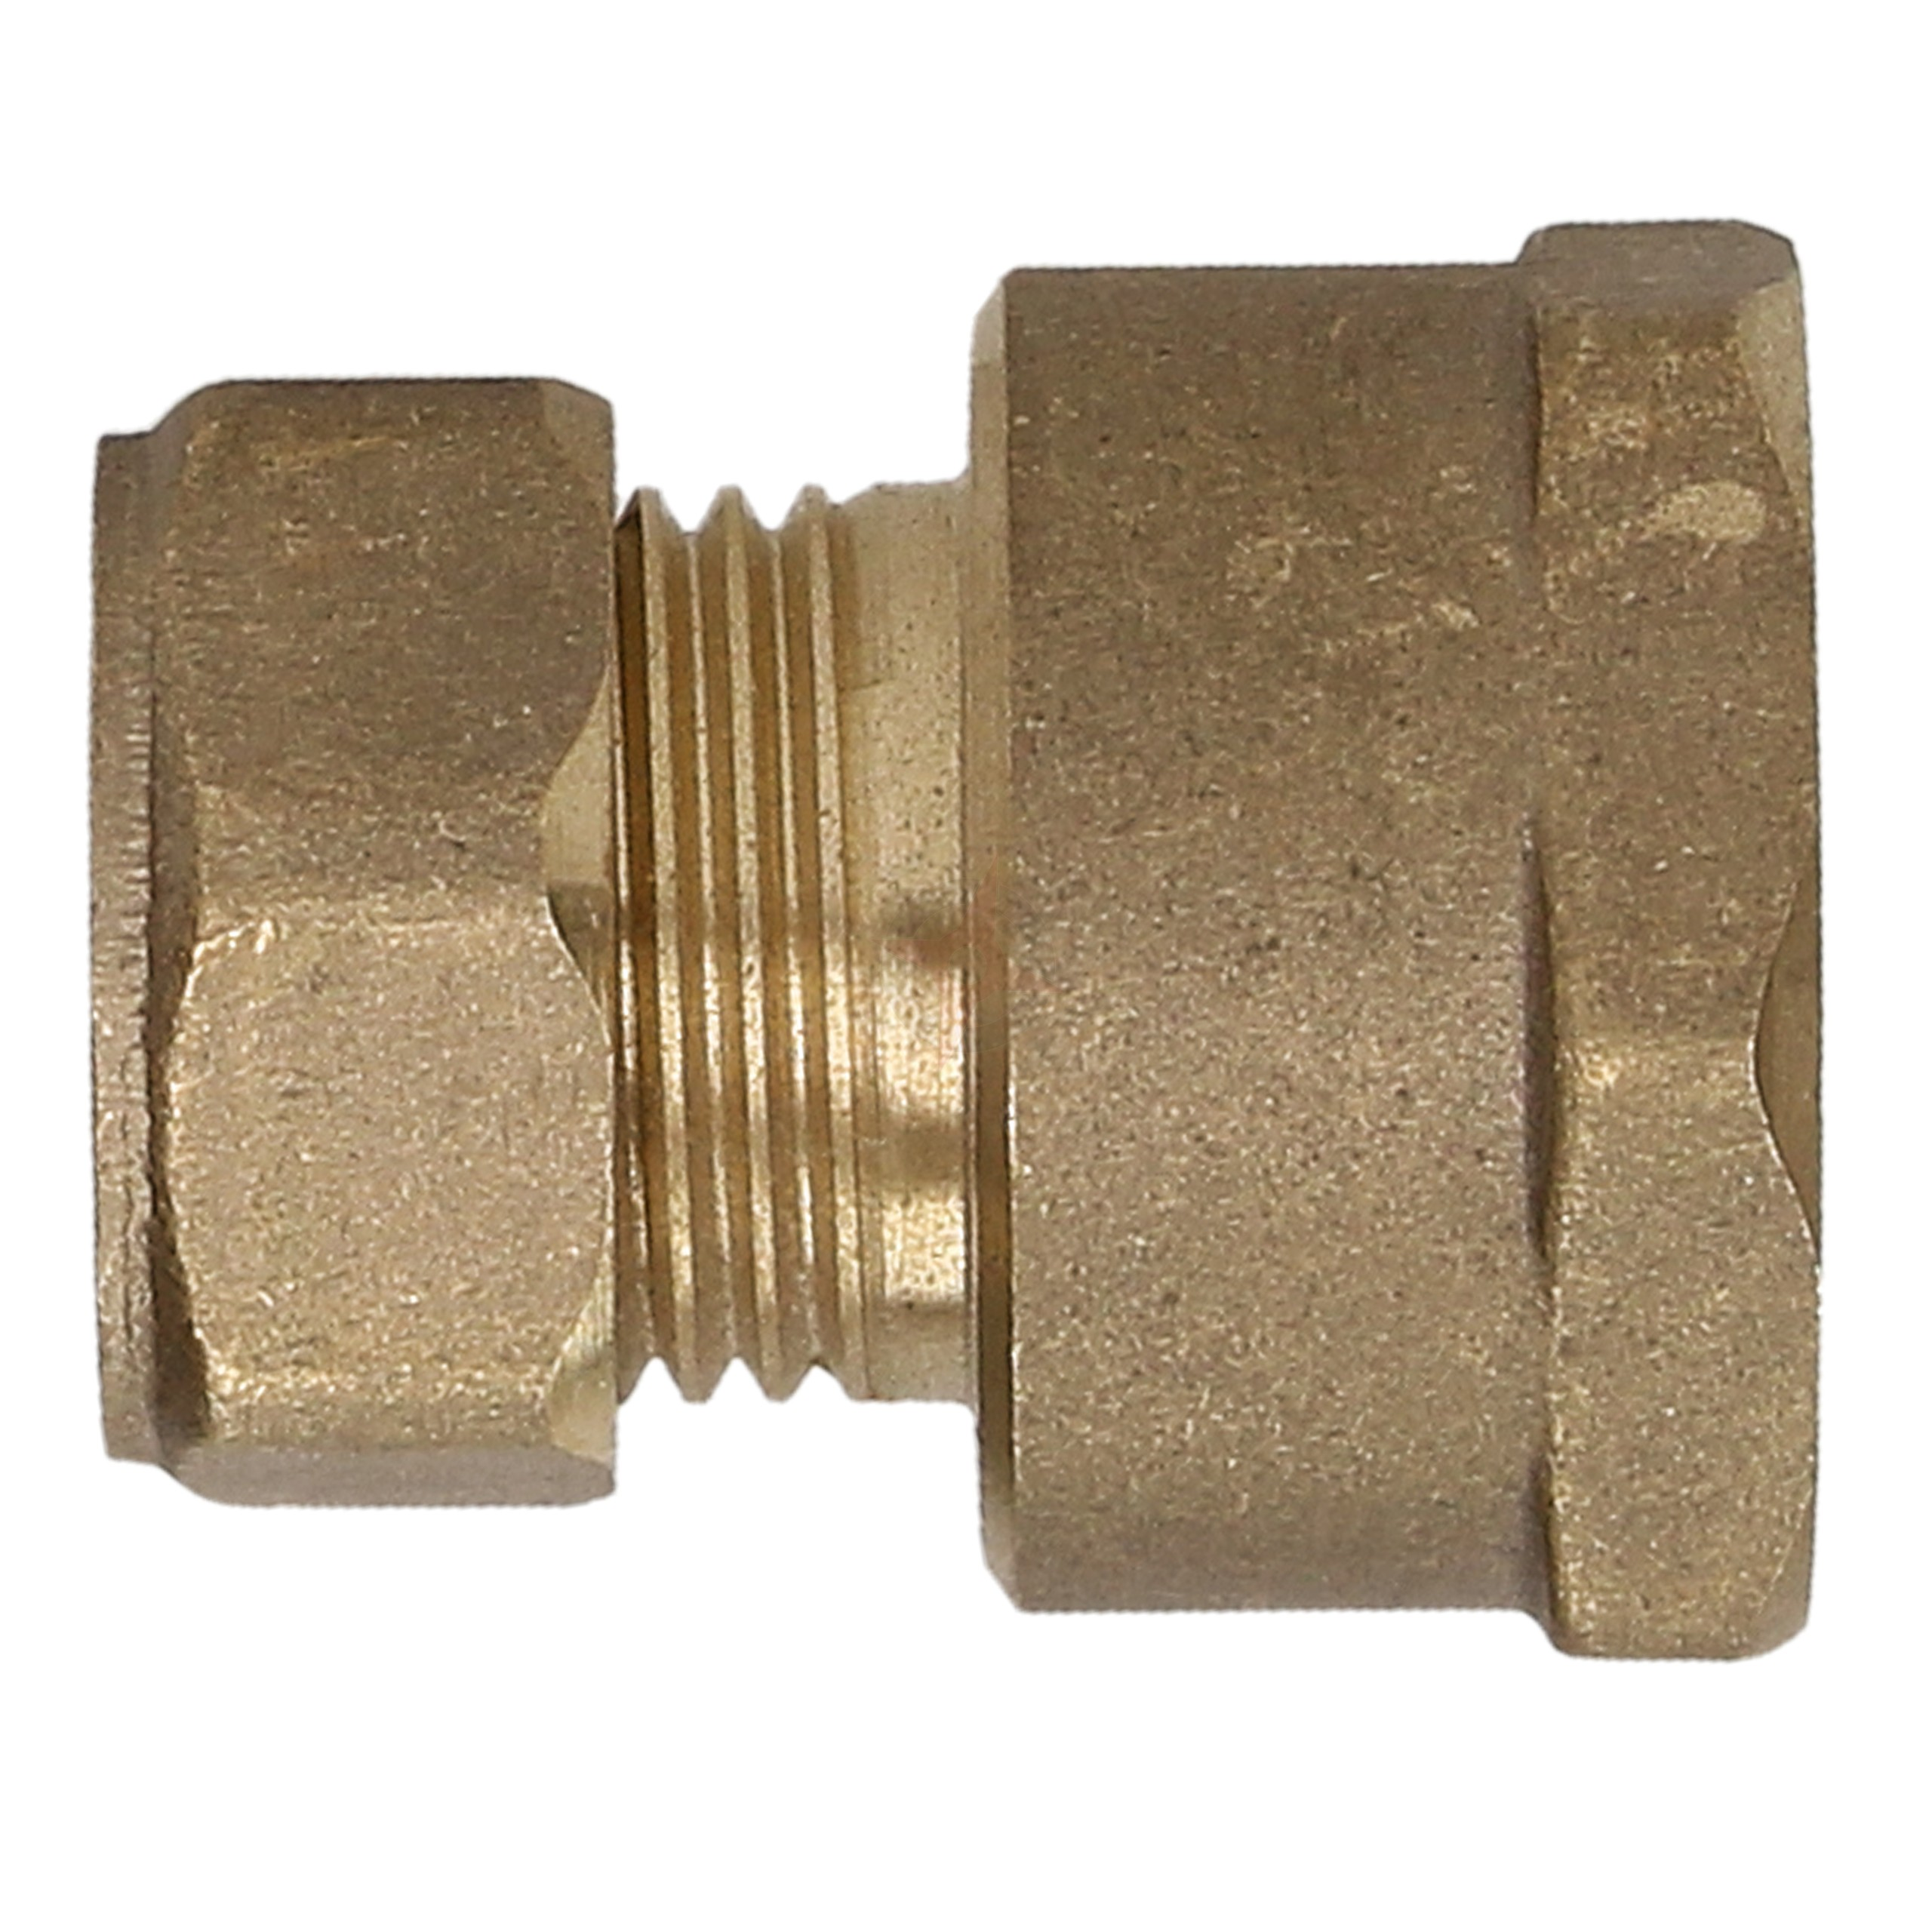 "Compression Adaptor 15mm x 3/4"" Female Iron Straight"